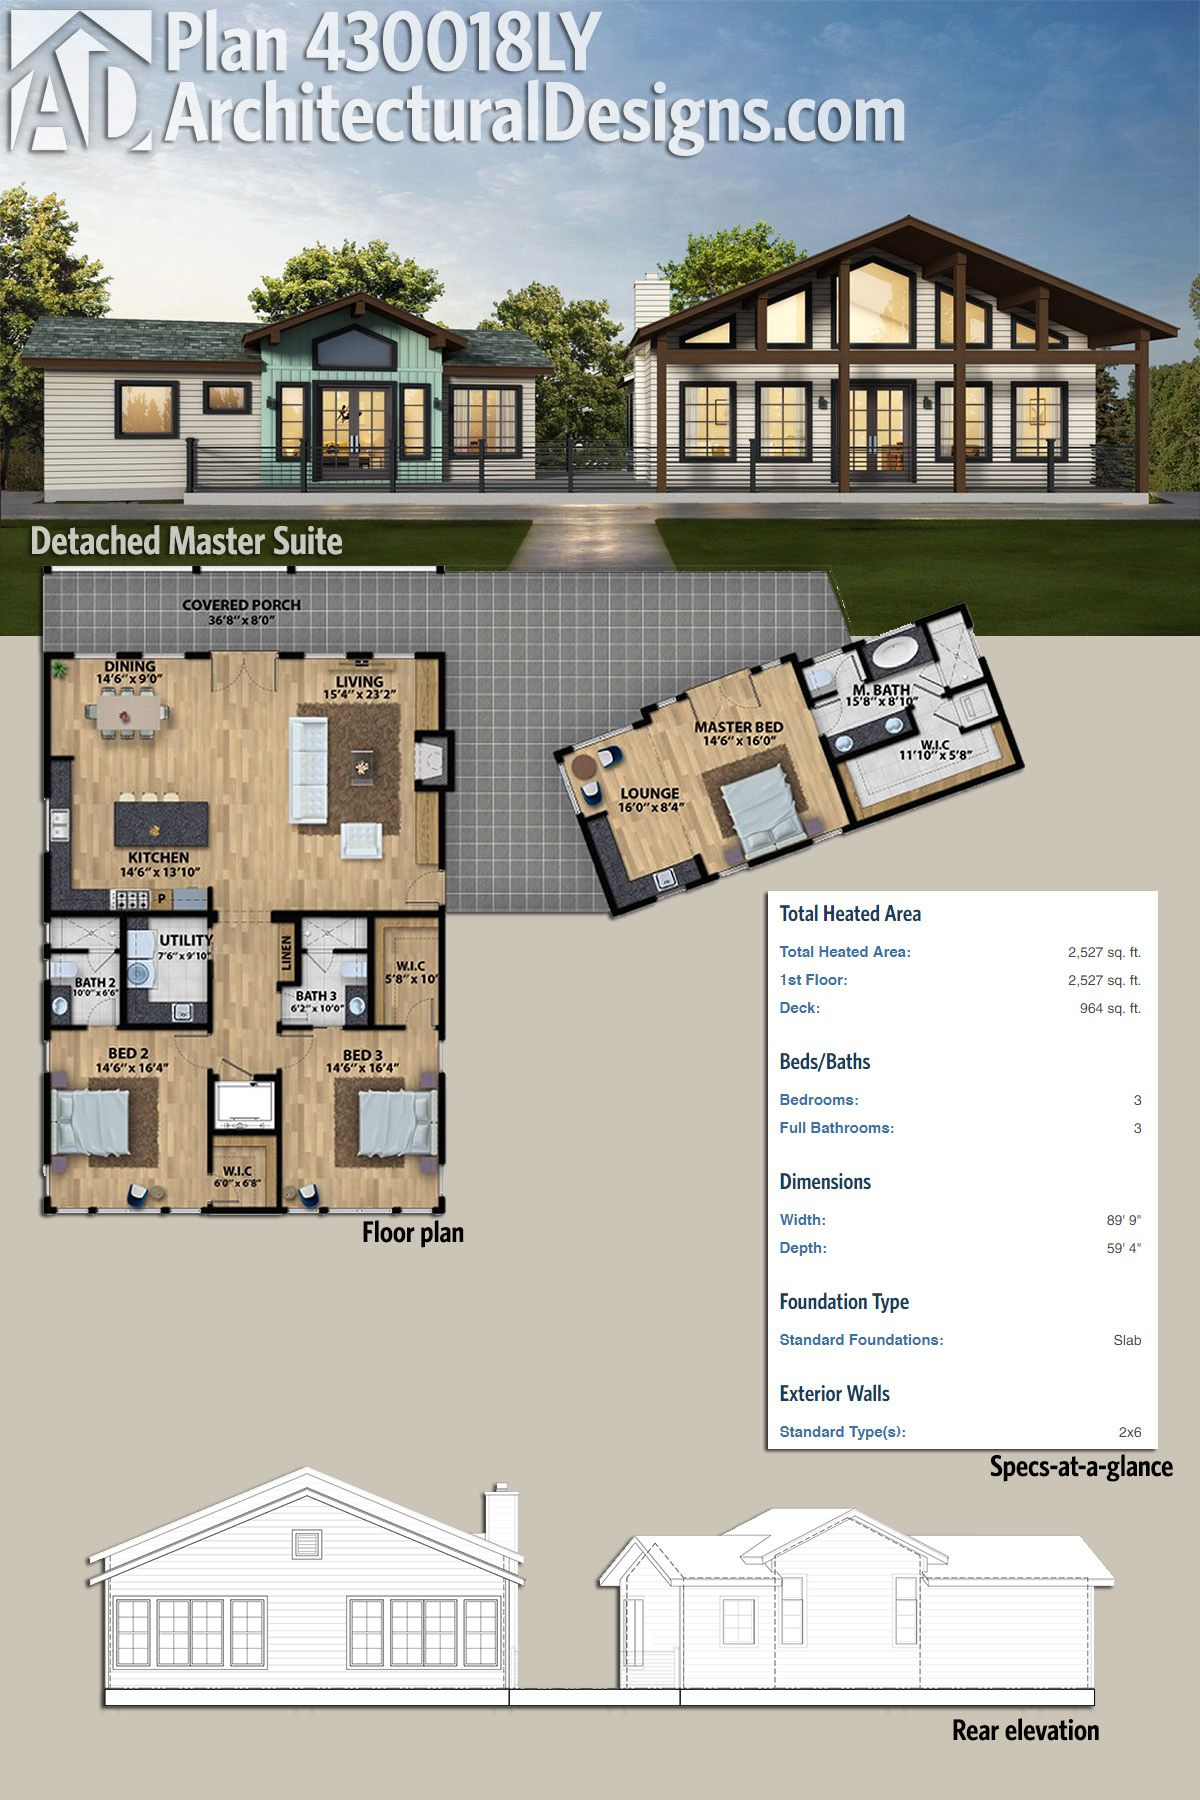 Plan 430018ly Detached Master Suite Bedroom House Plans House Plans Beach House Plans